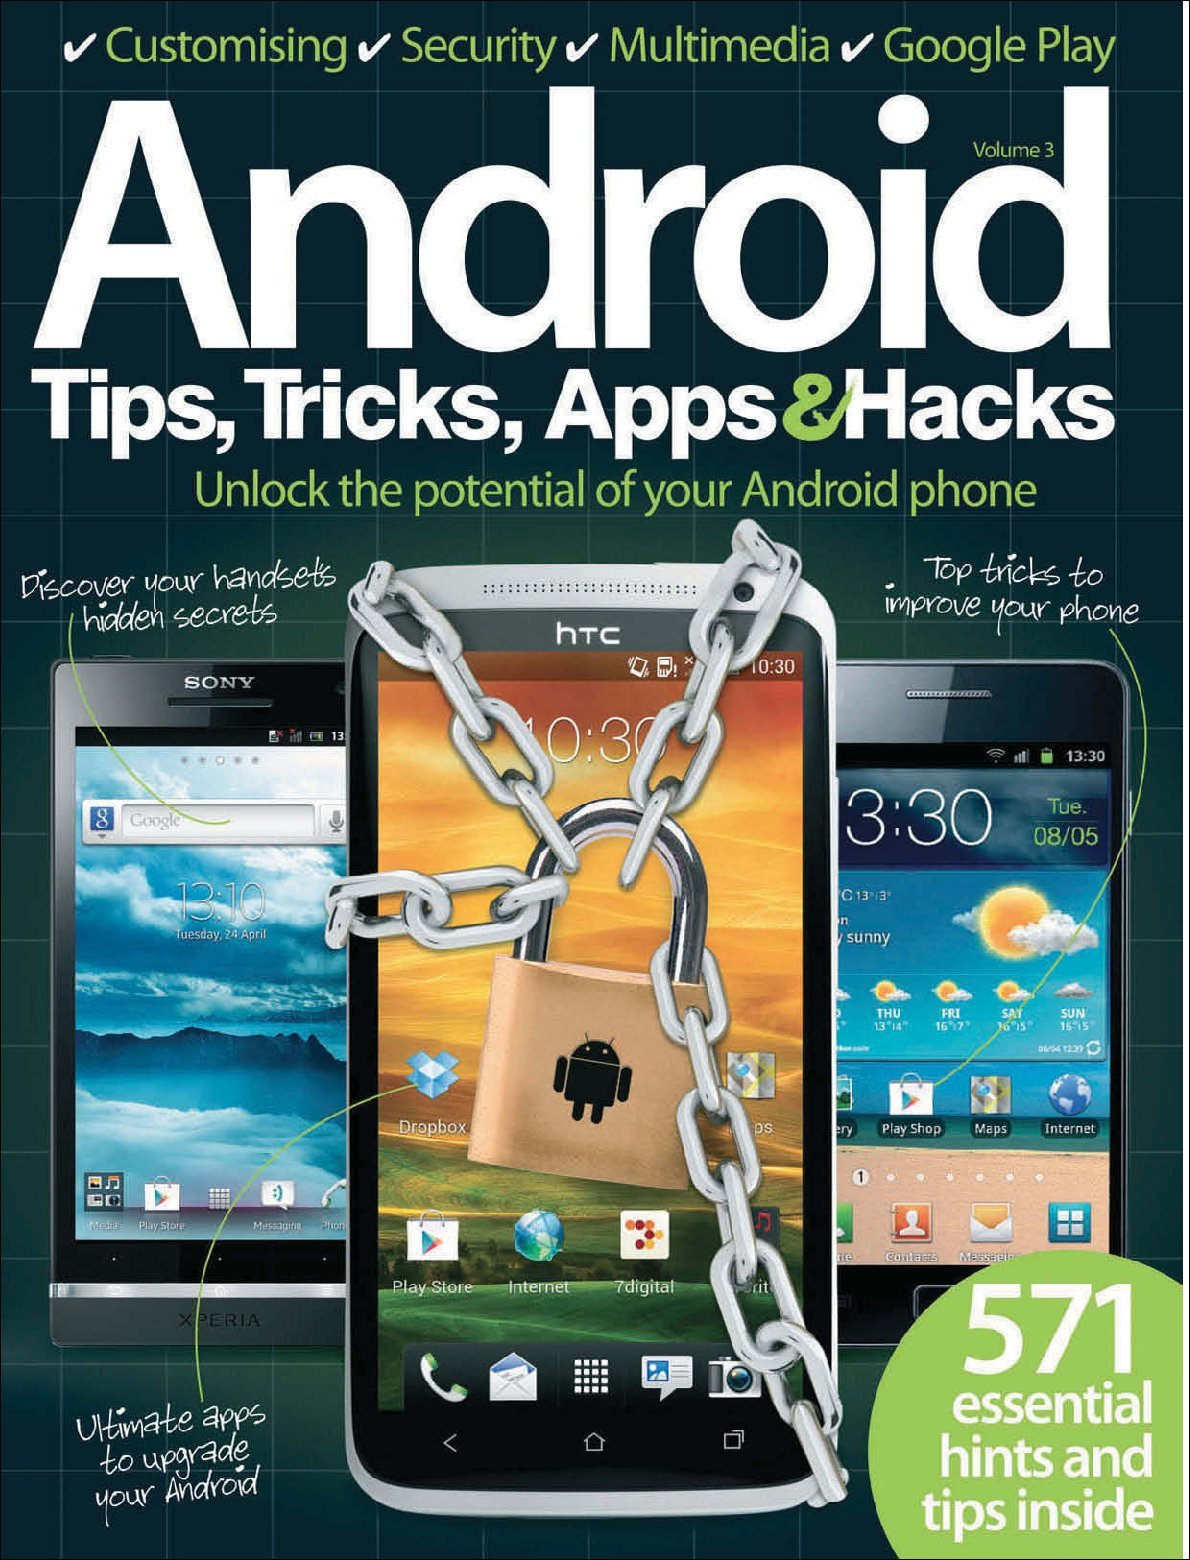 Android Tips Tricks Apps Vol 3 Digital